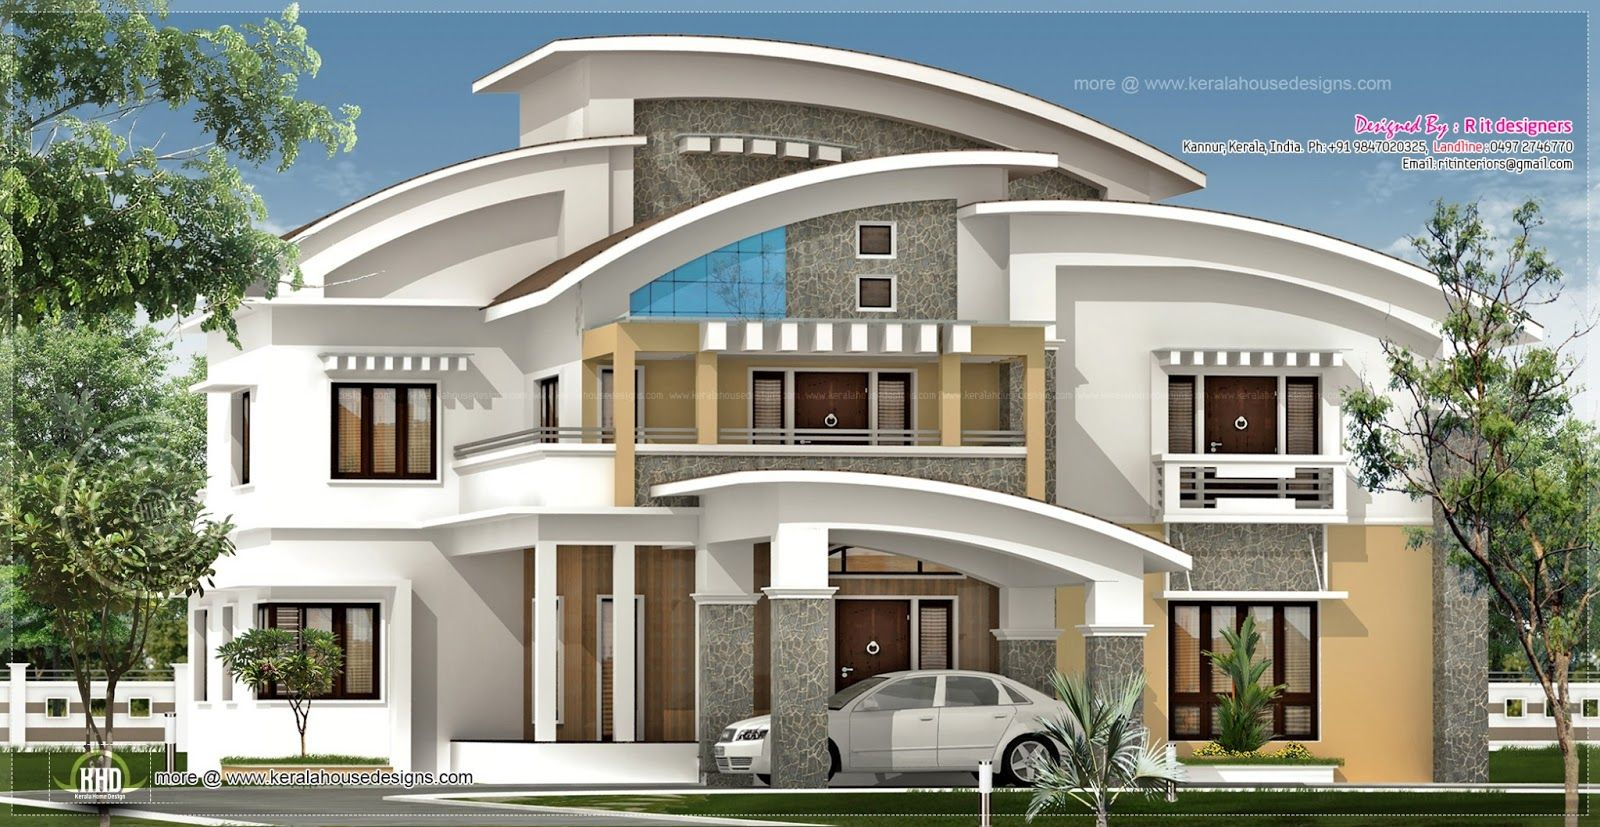 Home Design Exterior modern home exterior kerala home design and floor plans Luxury Home Exterior Designs 3750 Square Feet Luxury Villa Exterior Kerala Home Design And